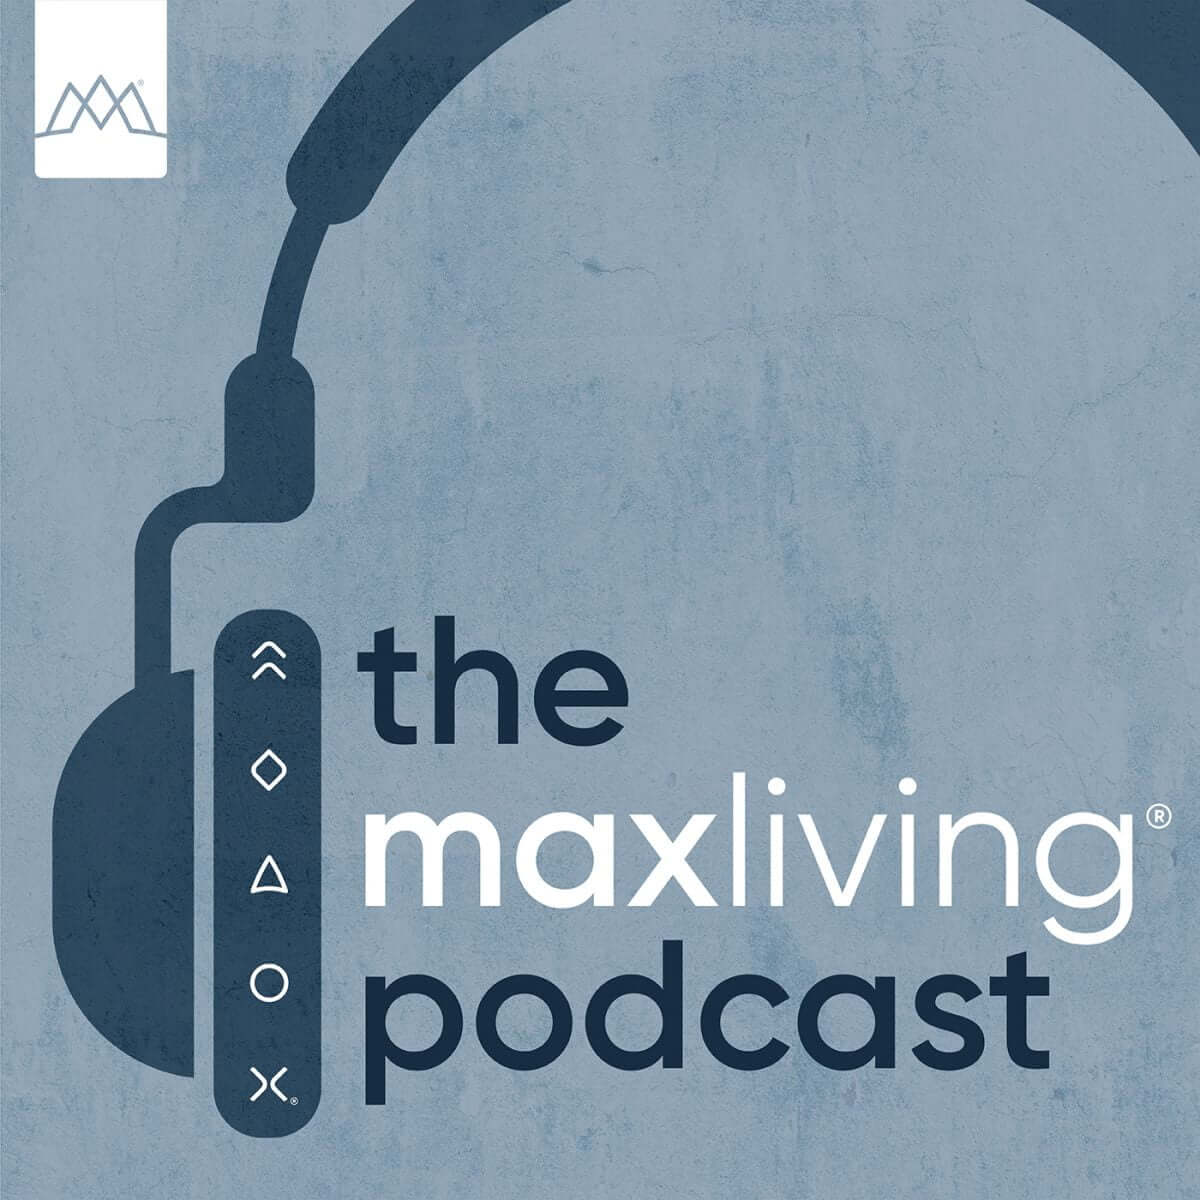 The MaxLiving Podcast Album Artwork